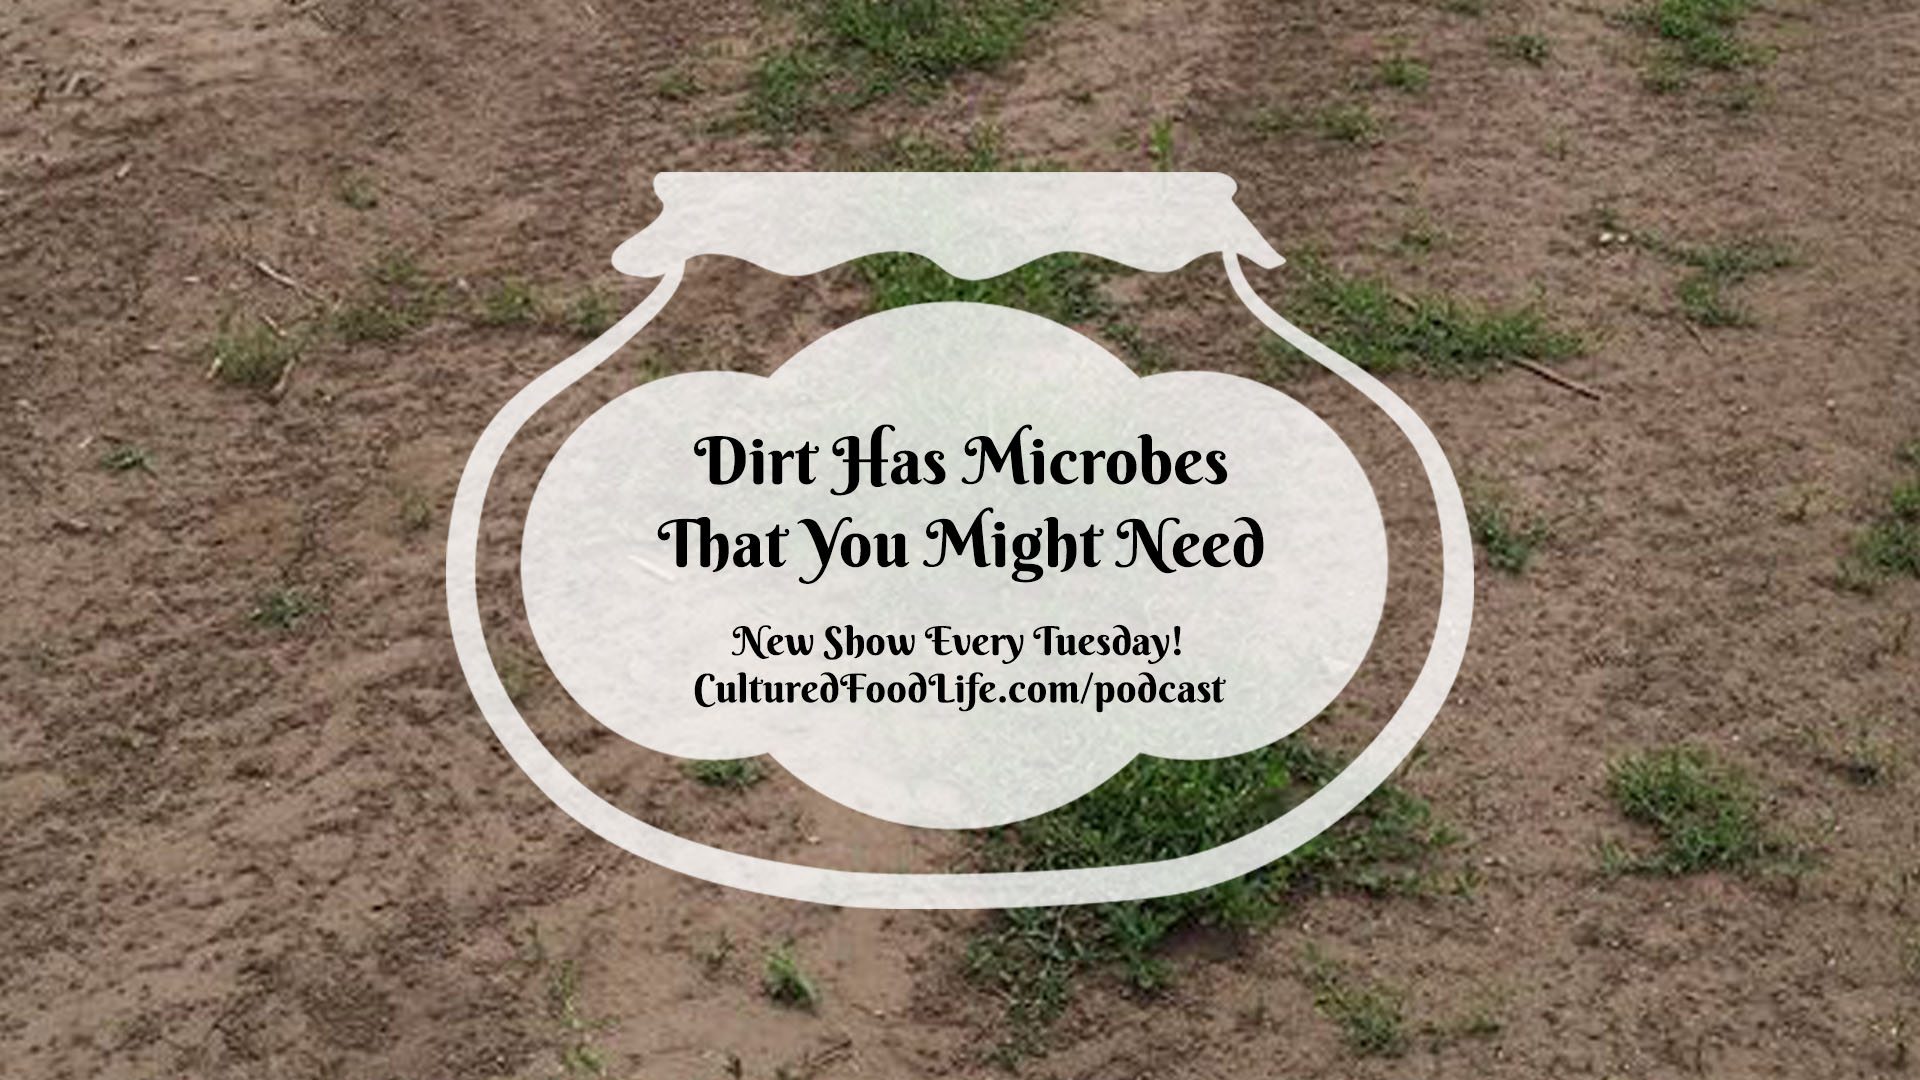 Dirt Has Microbes That You Might Need full